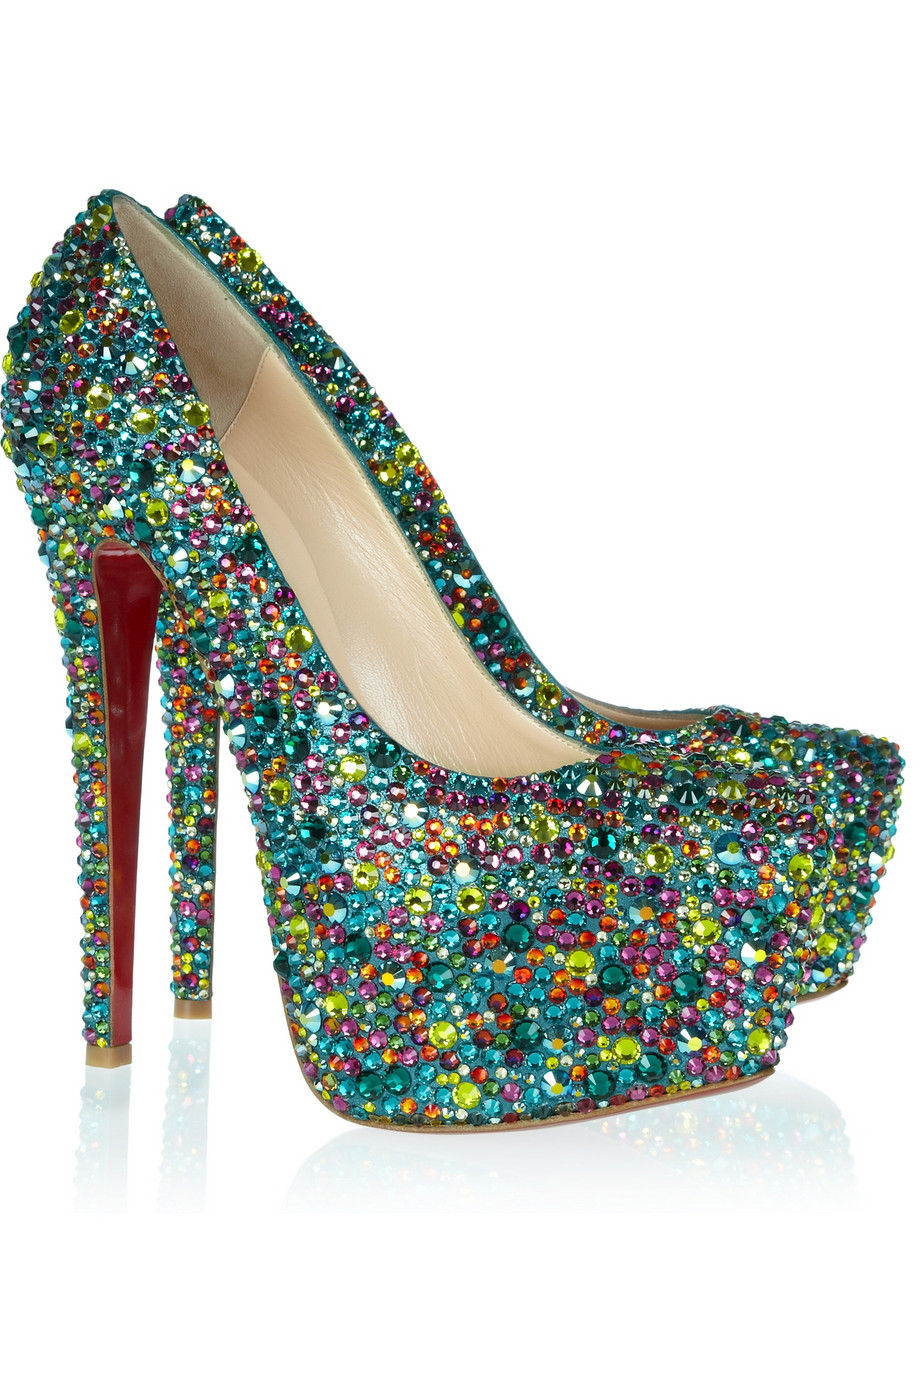 christian louboutin daffodile 160 crystalembellished leather pumps in blue lyst. Black Bedroom Furniture Sets. Home Design Ideas